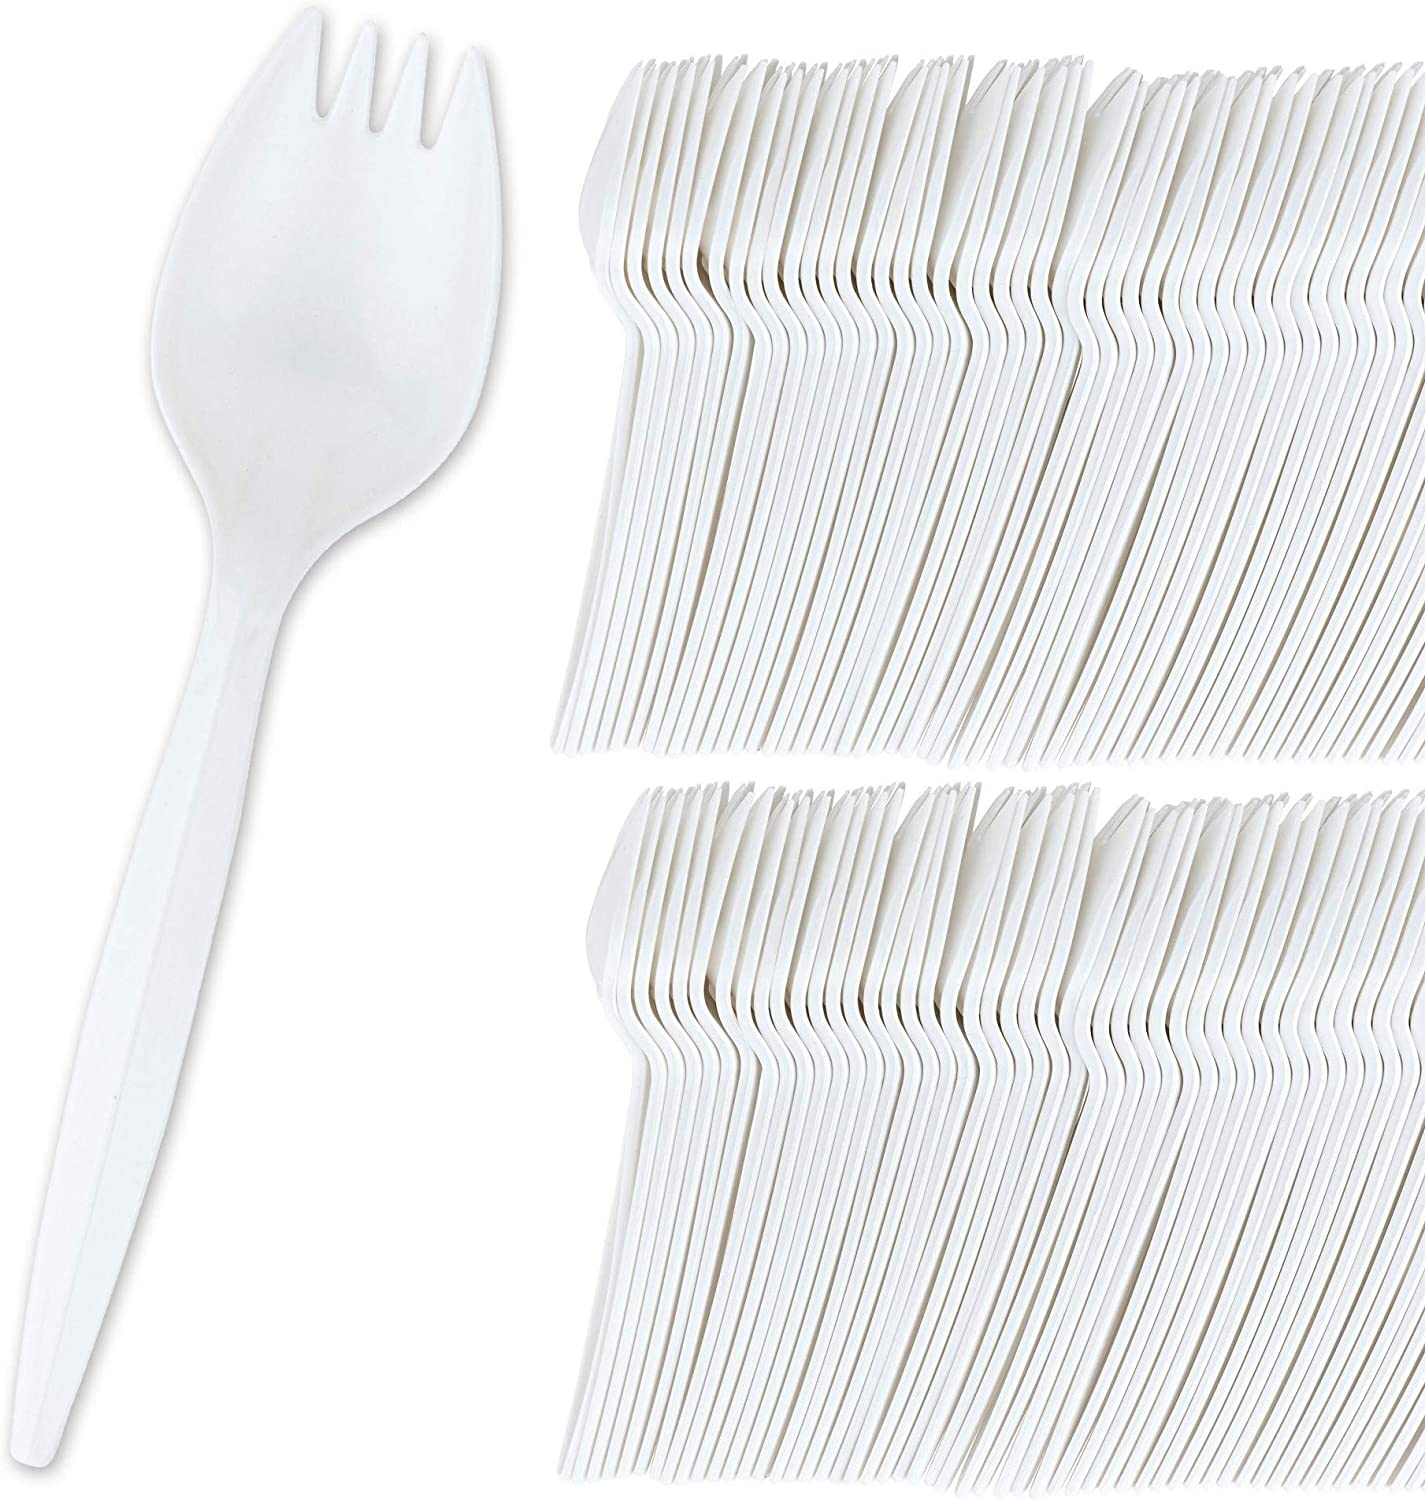 Stock Your Home Many popular brands 100 Disposable White Plastic †Selling Sporks